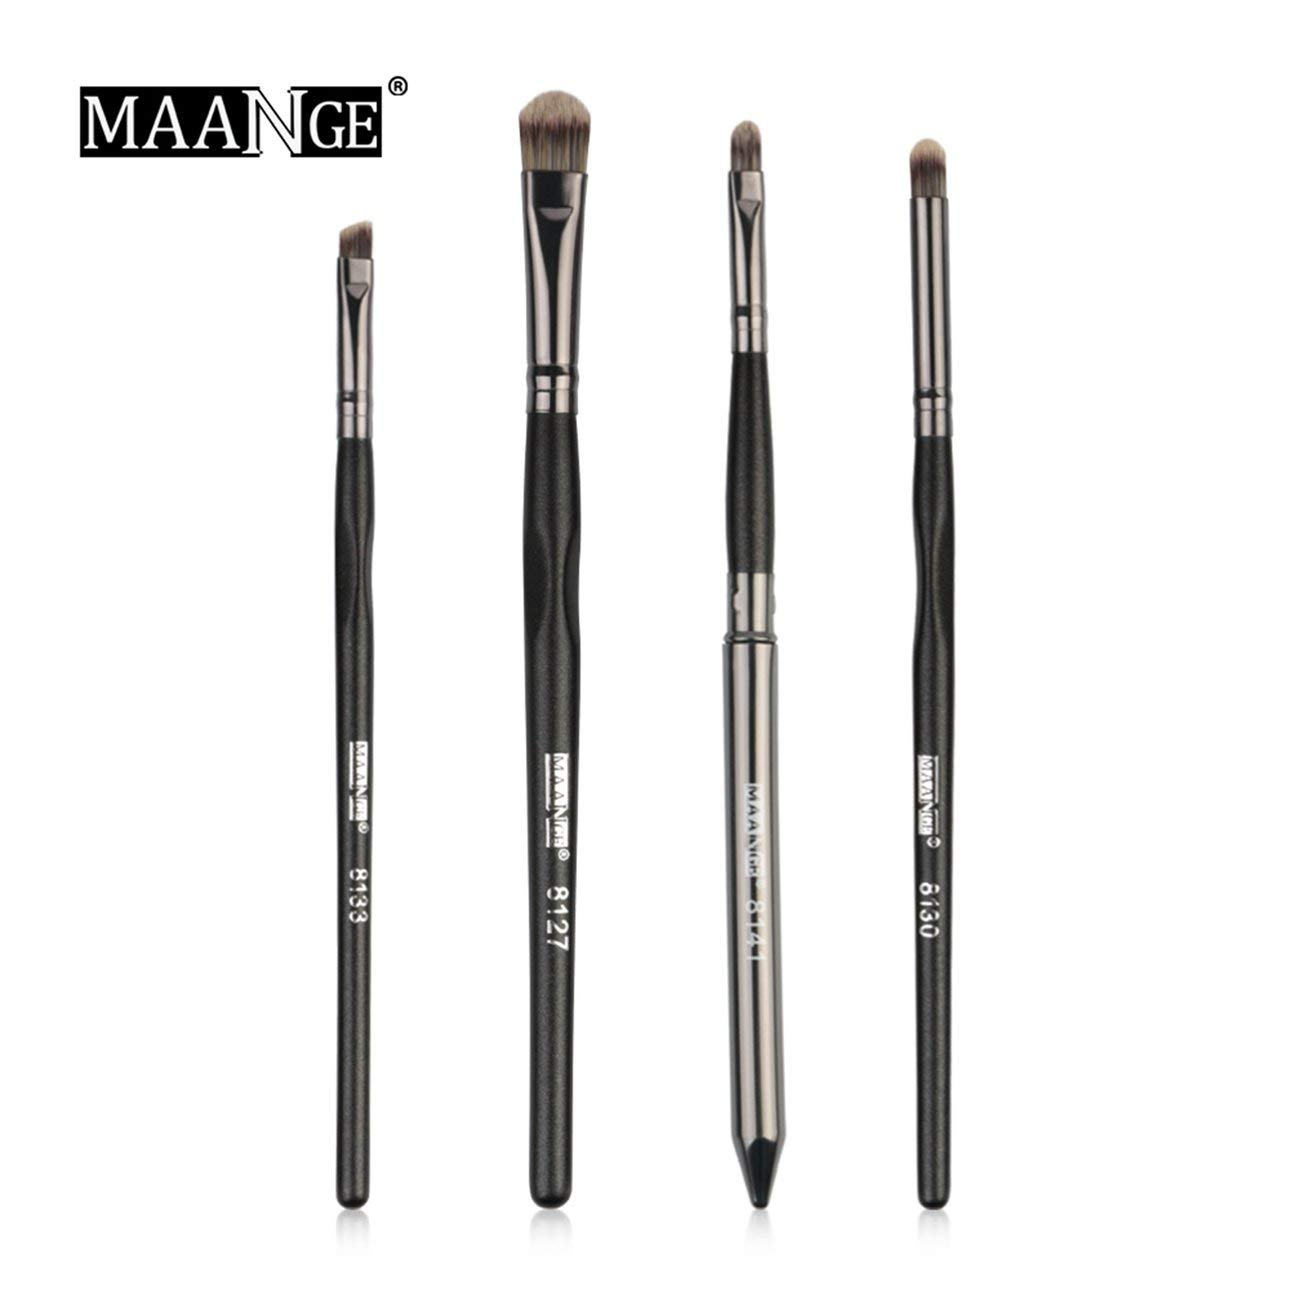 Liobaba 4PCS/SET Wood Handle Makeup Brushes Set Professional Powder Eyeshadow Eye Lip Face Cosmetic Beauty Brush Kit